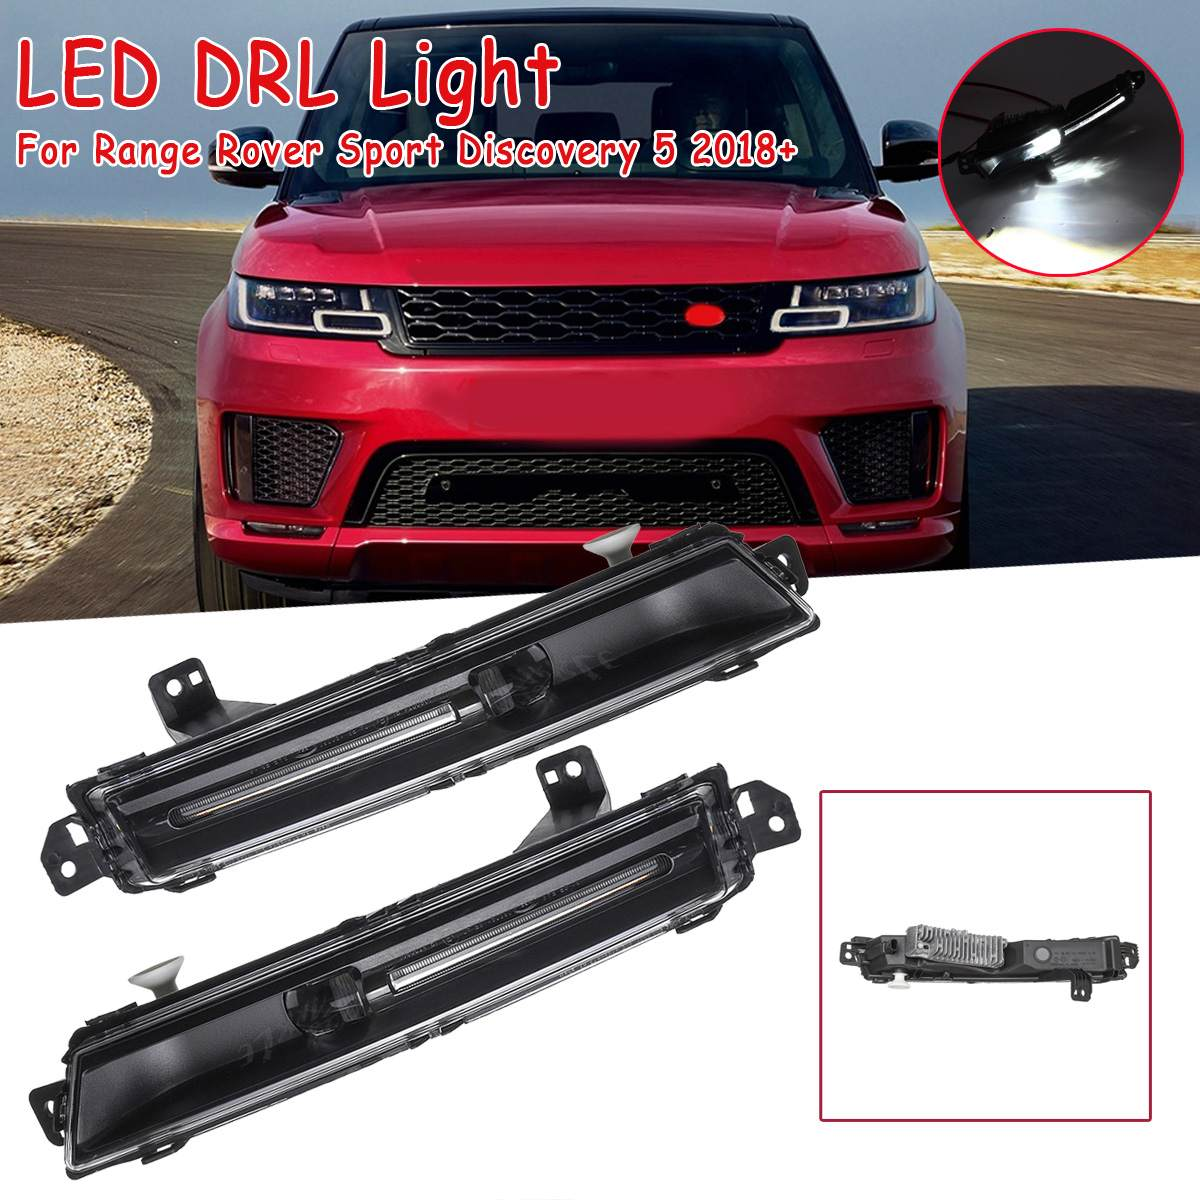 US $96 91 37% OFF|12V Left/Right Car Front Bumper LED DRL Fog Lights Lamp  Replacement For Range Rover Sport Discovery 5 2018+ LR098343/LR098340-in  Car